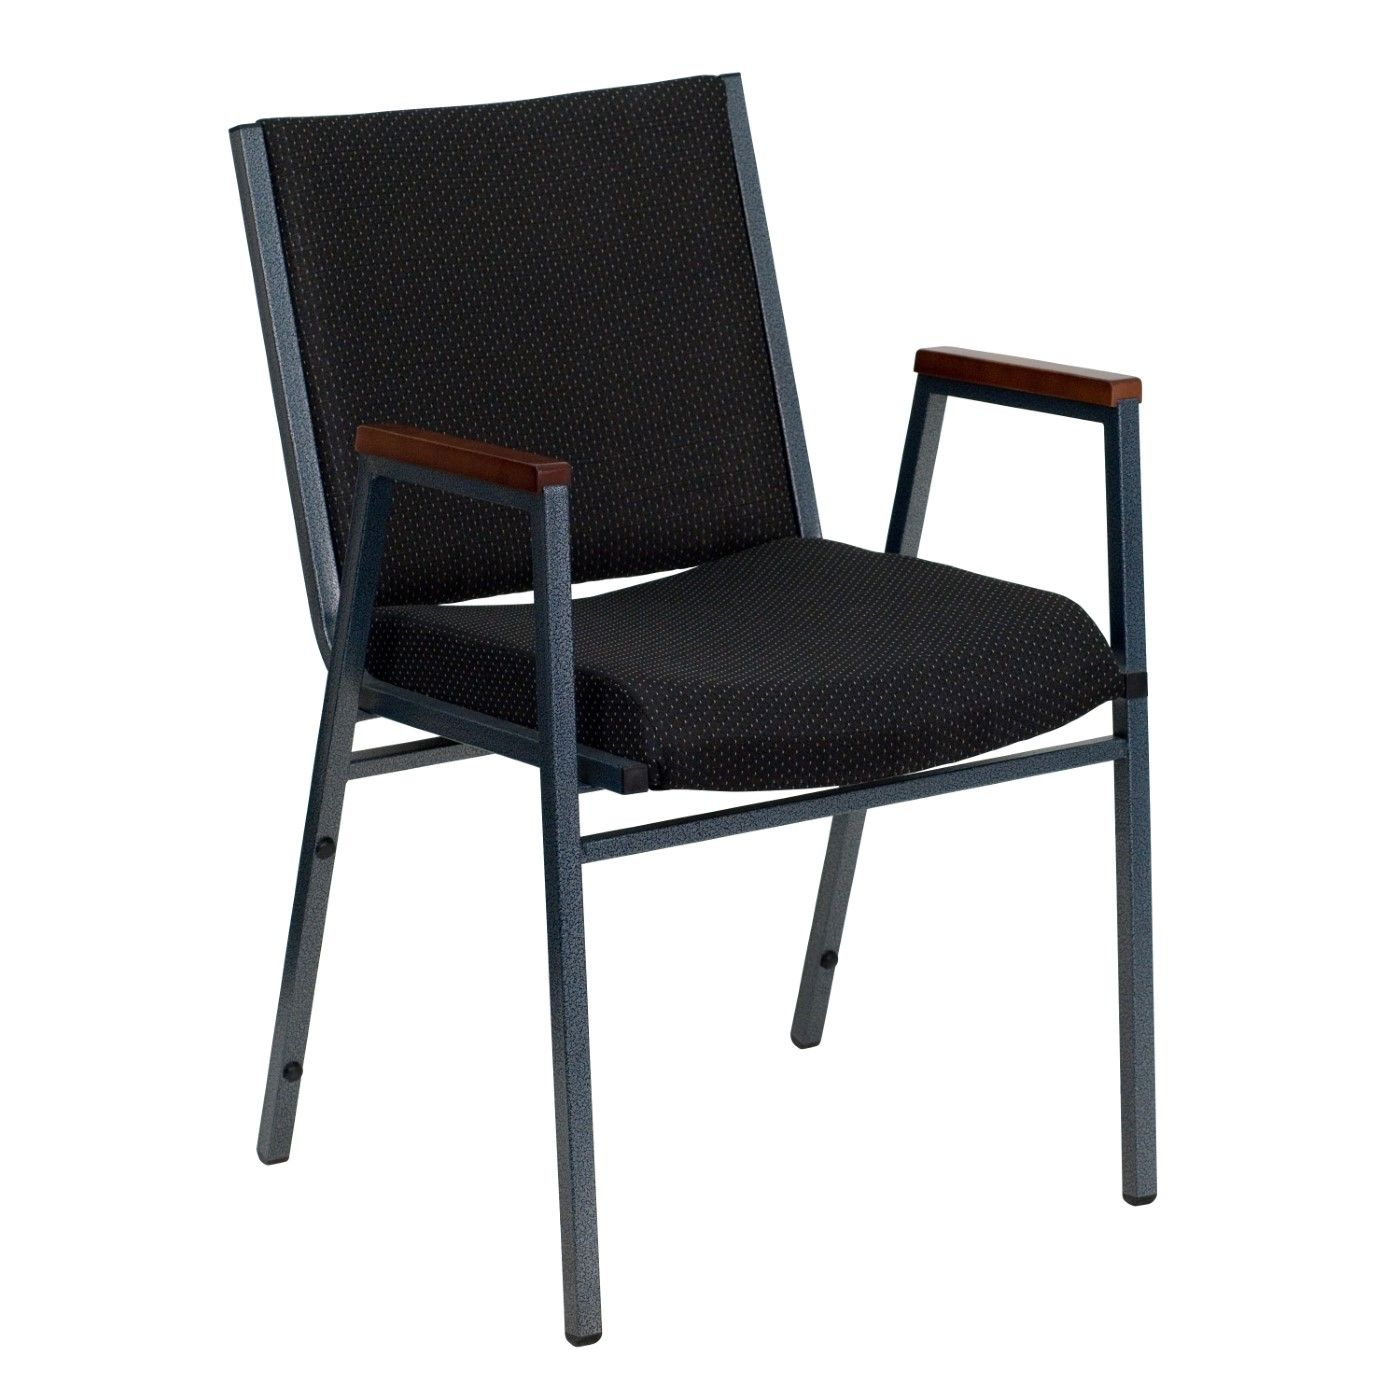 TOUGH ENOUGH Series Heavy Duty Black Dot Fabric Stack Chair with Arms